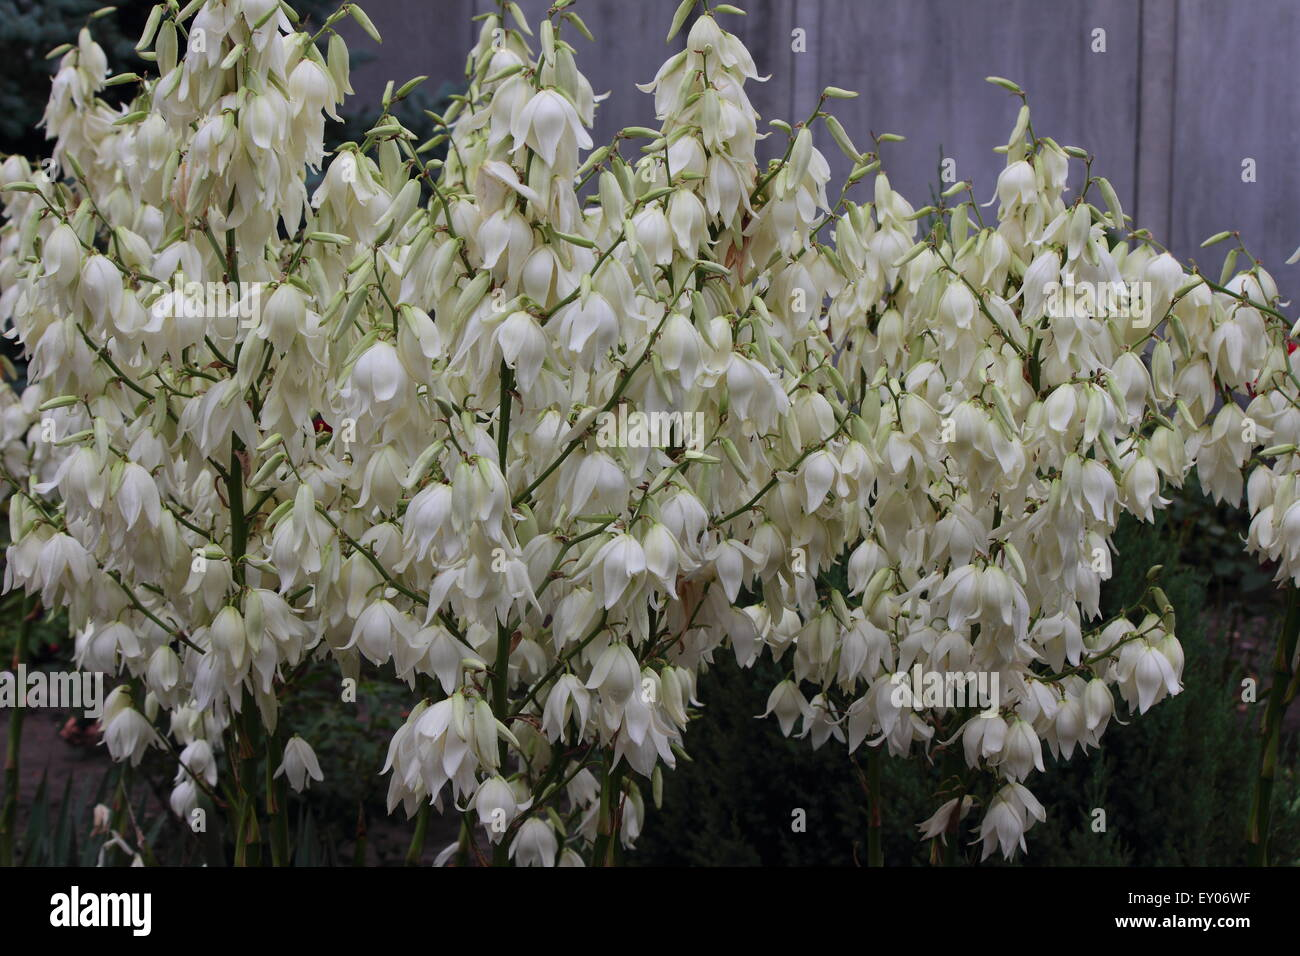 Yucca bloom stock photos yucca bloom stock images alamy grow beautiful white flowers yucca stock image mightylinksfo